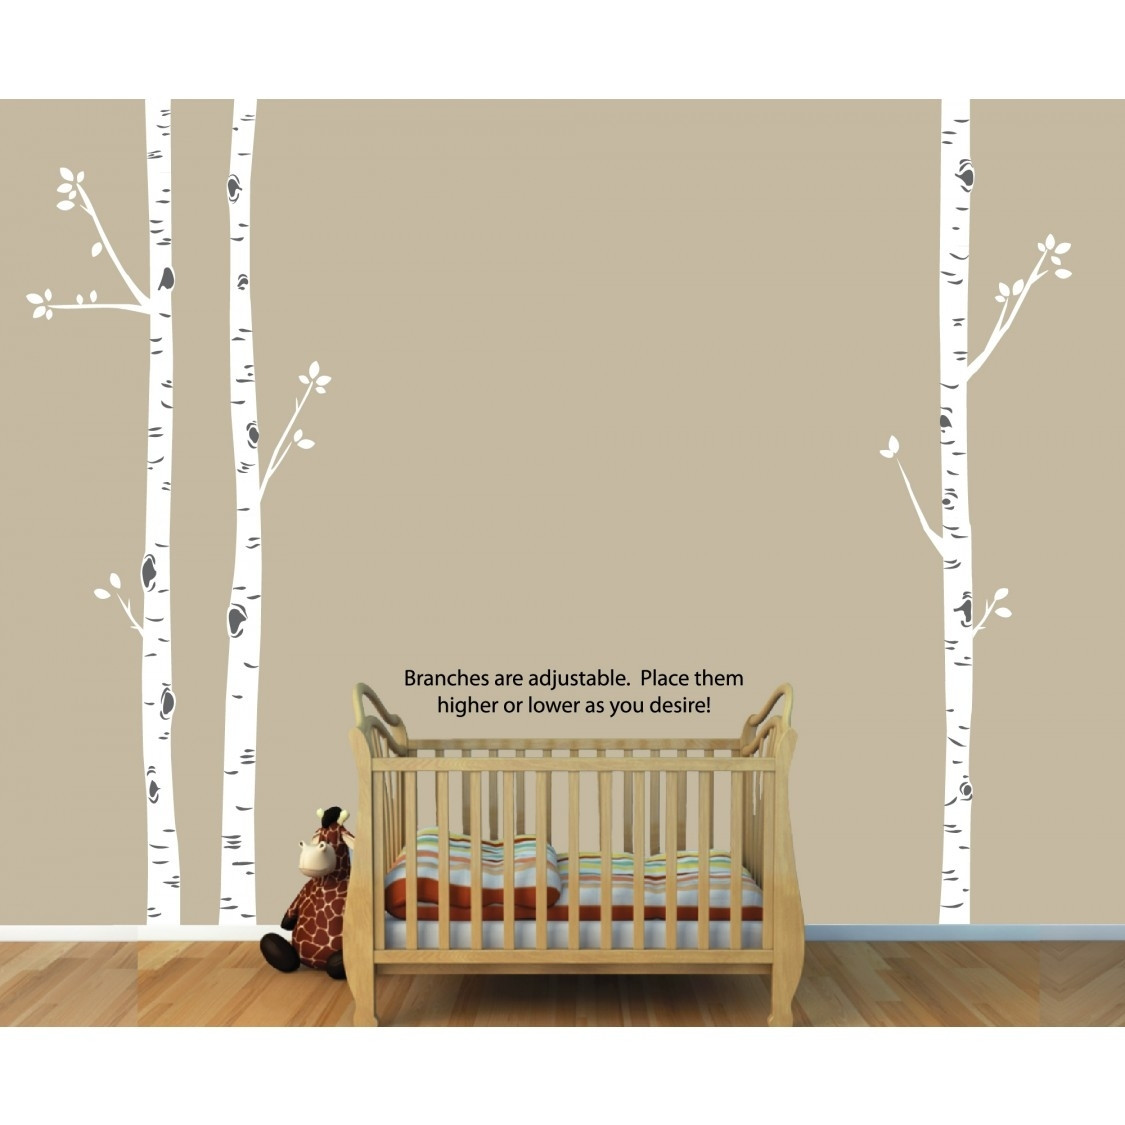 Birch Tree Wall Art And Birch Tree Decals For Nursery For Girls Intended For Most Recently Released Birch Tree Wall Art (Gallery 10 of 20)